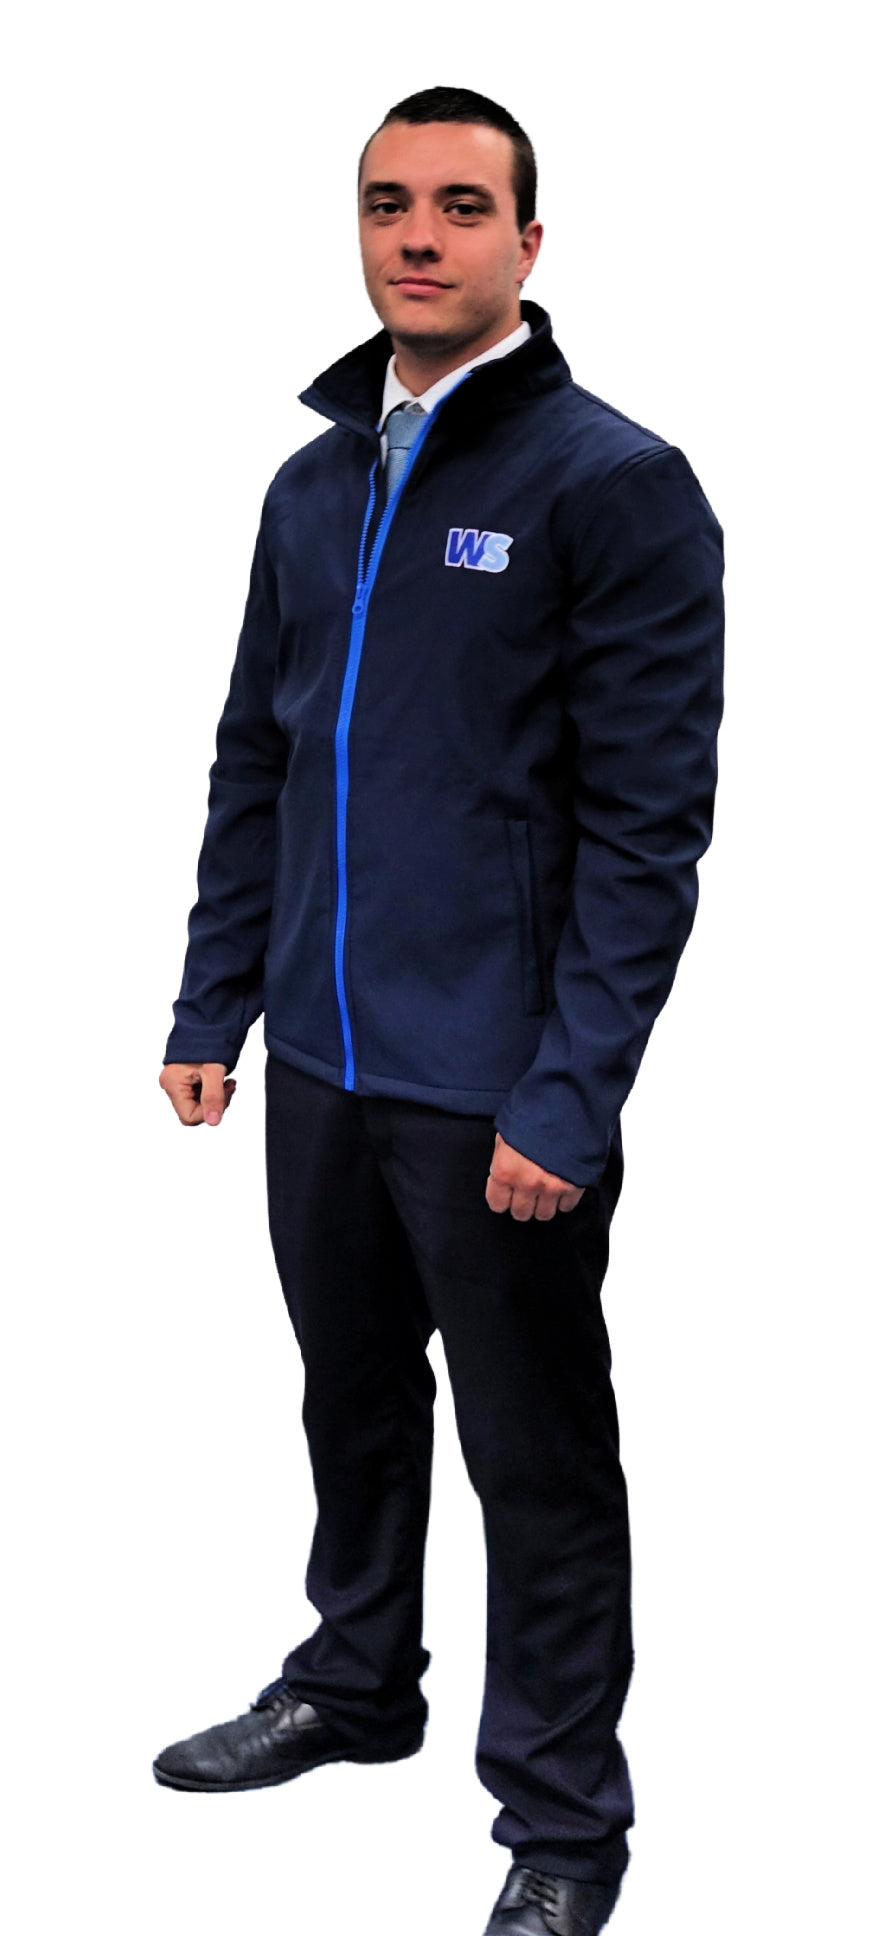 WS Softshell Jacket Navy/French Blue